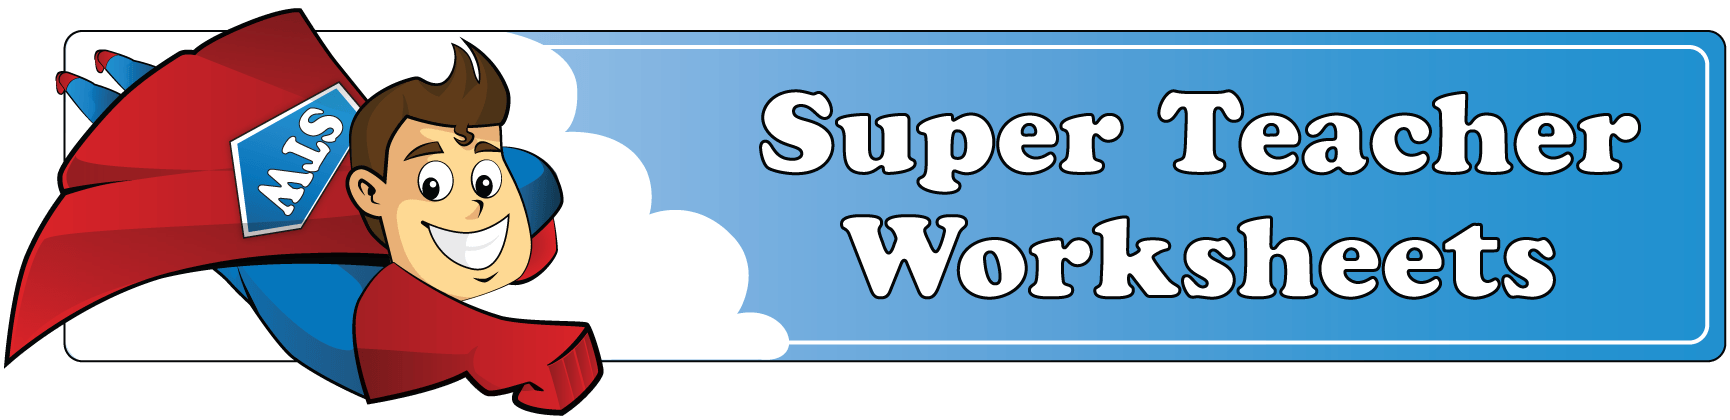 Super Teacher Worksheet: Log In to Super Teacher Worksheets,